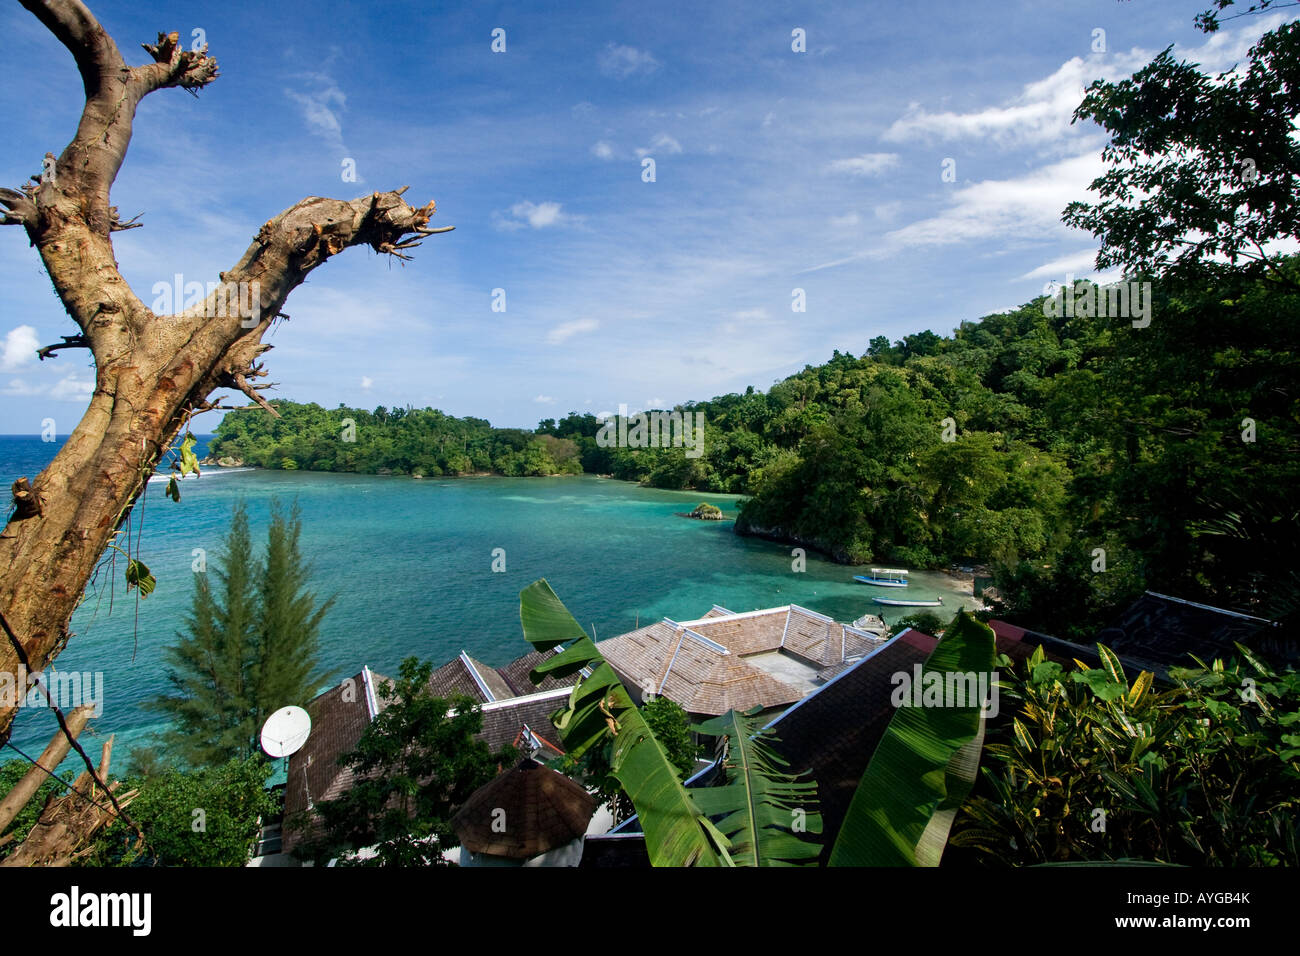 Jamaica Port Antonio Tropical landscape near blue lagoon Stock Photo